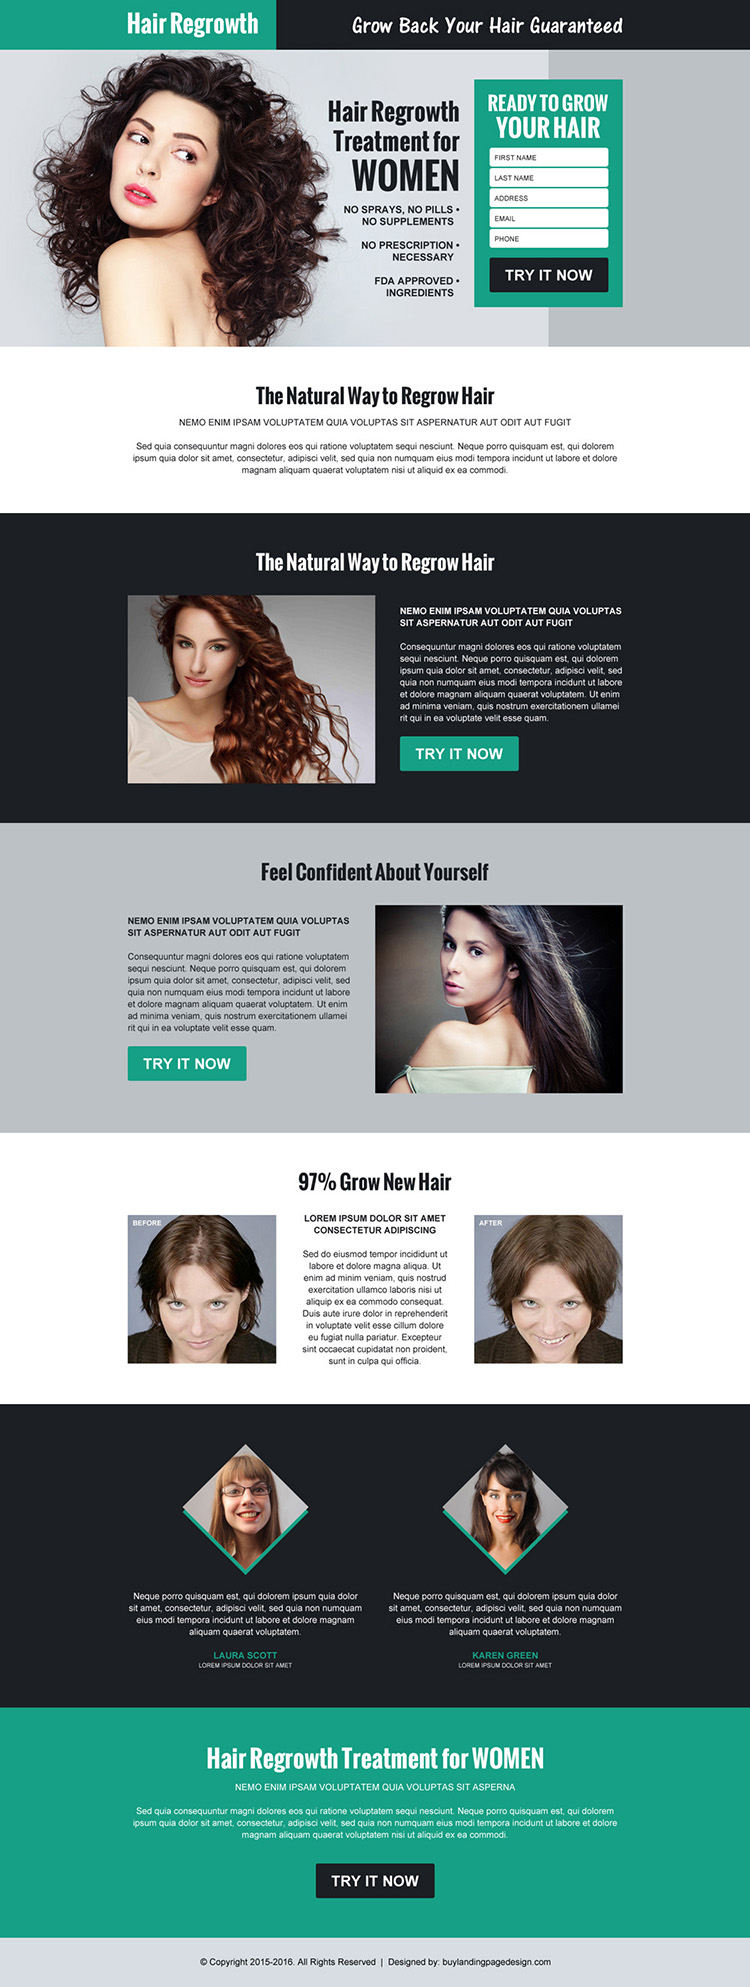 hair regrow product selling responsive landing page design